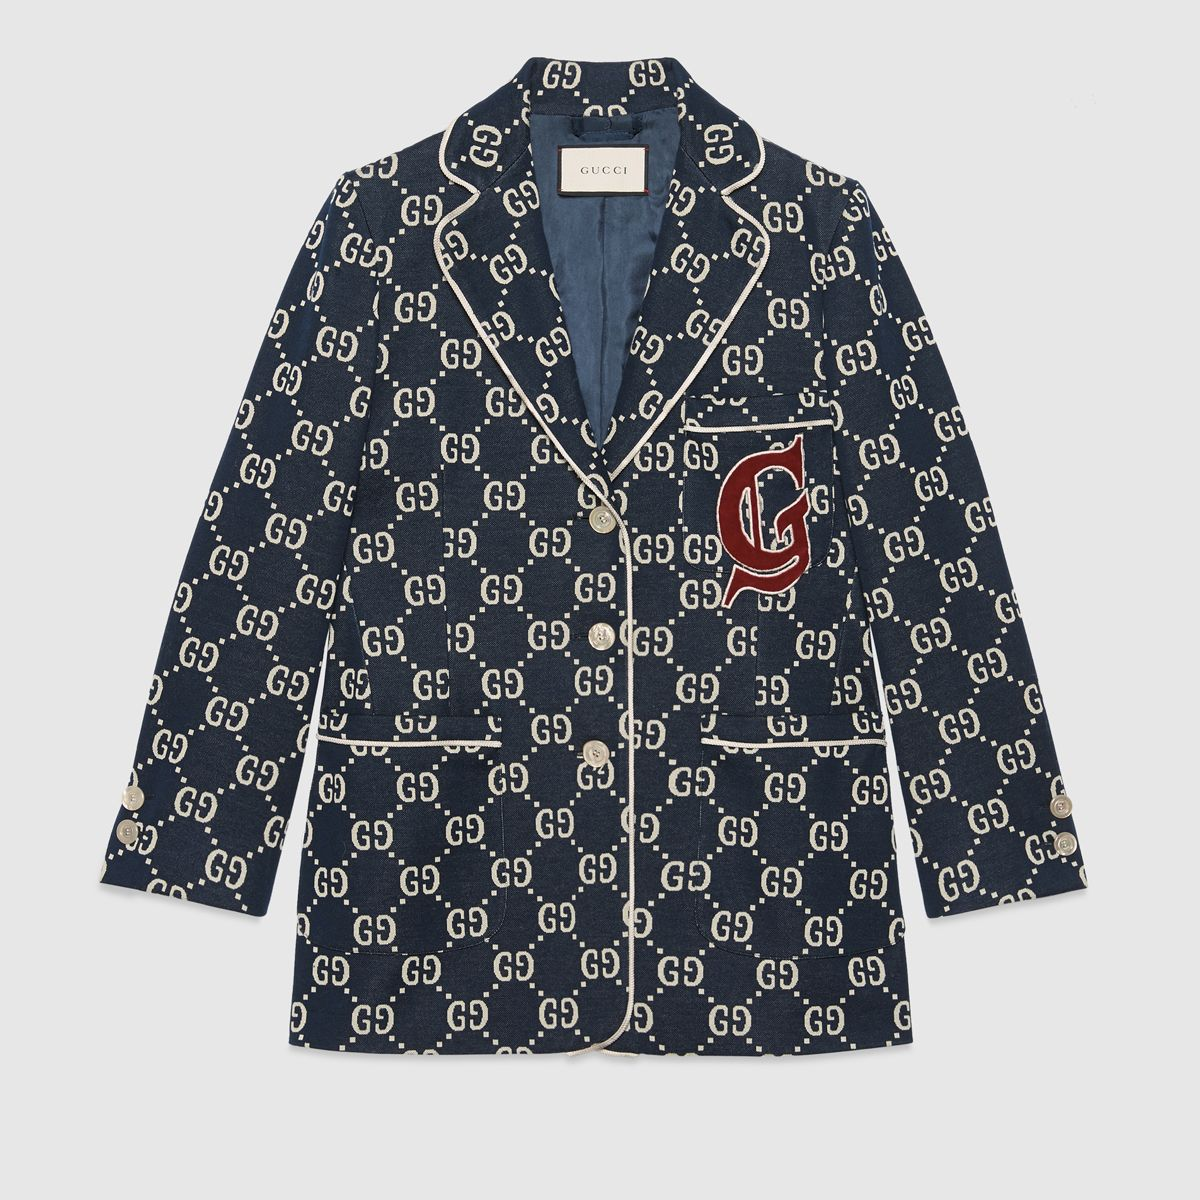 undefined 265463 1534504810815 product.1200x1200uc - 10 Extra Inexpensive Methods to Add Gucci Into Your Wardrobe